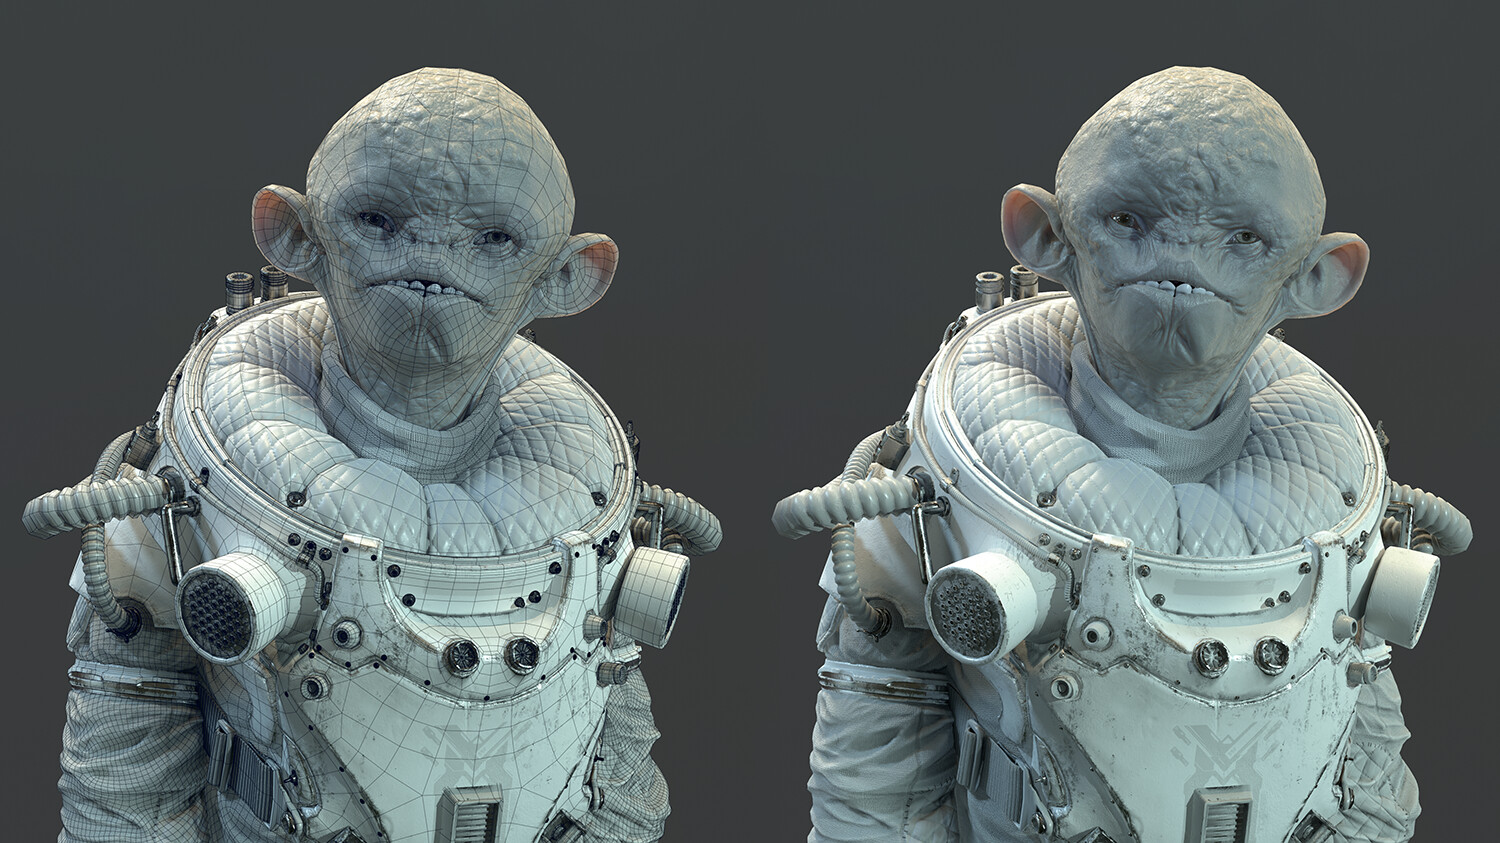 Real-time shading and topology